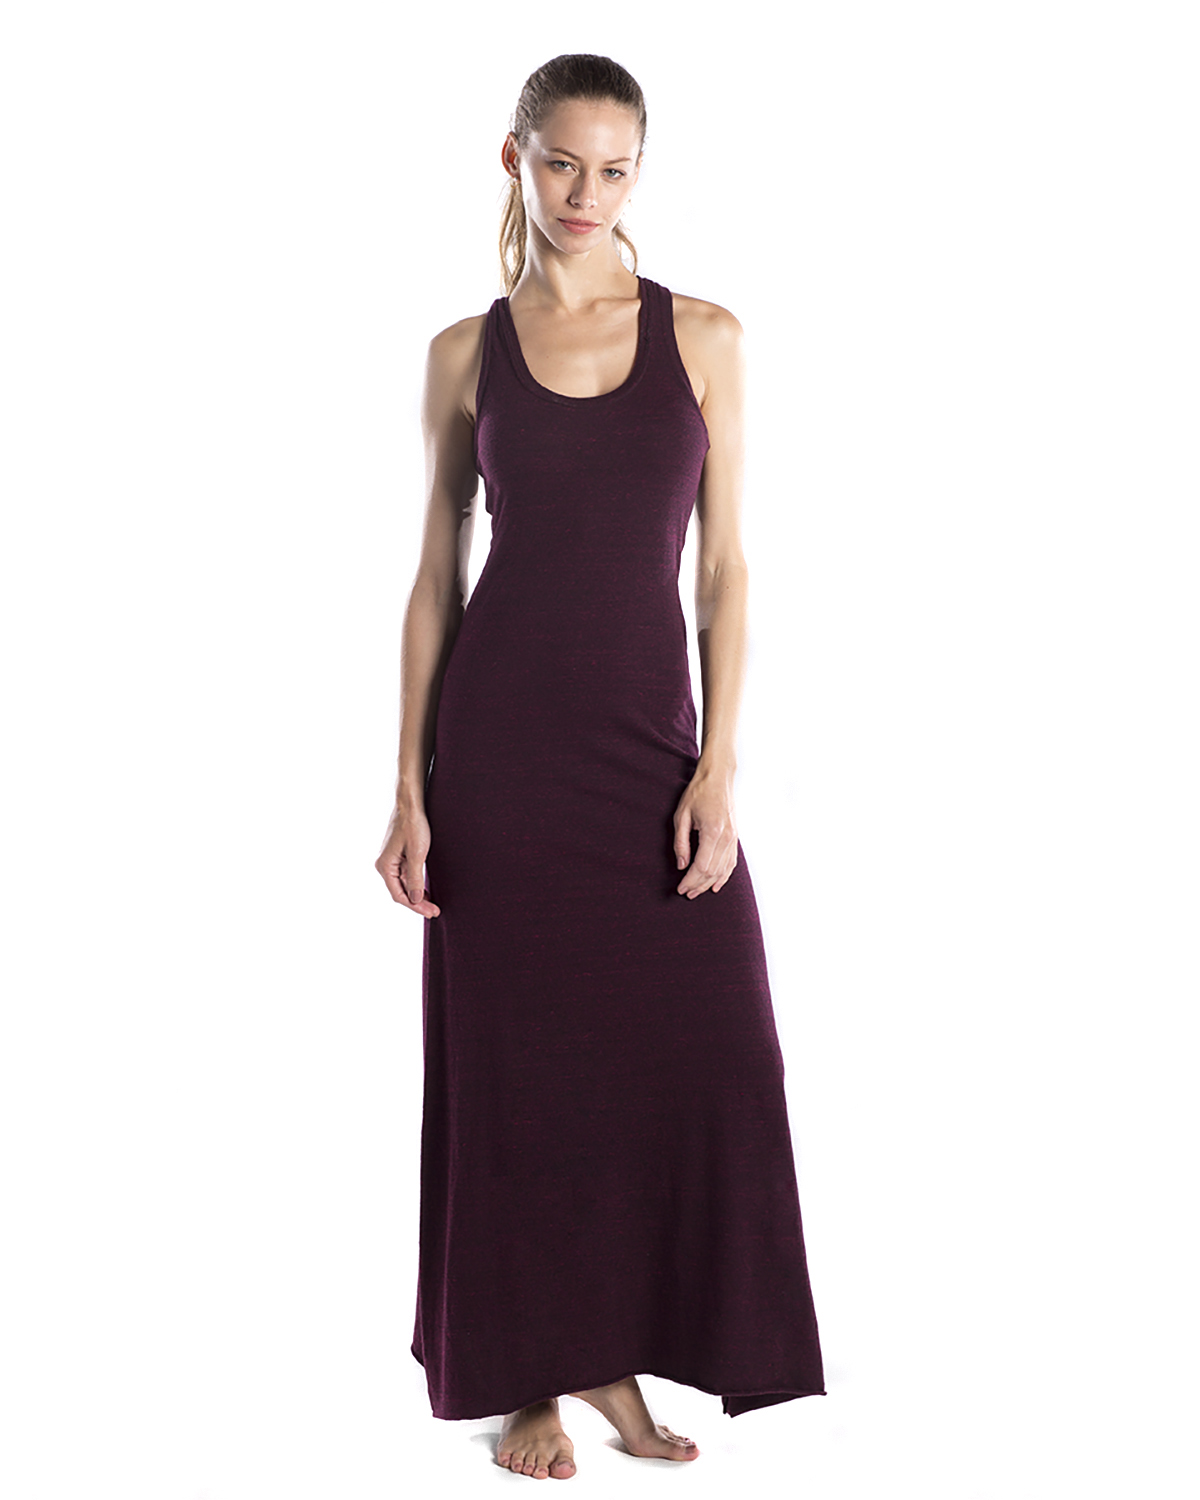 US Blanks US976OD - Ladies' 5.2 oz. Triblend Racerback Over-Dyed Dress